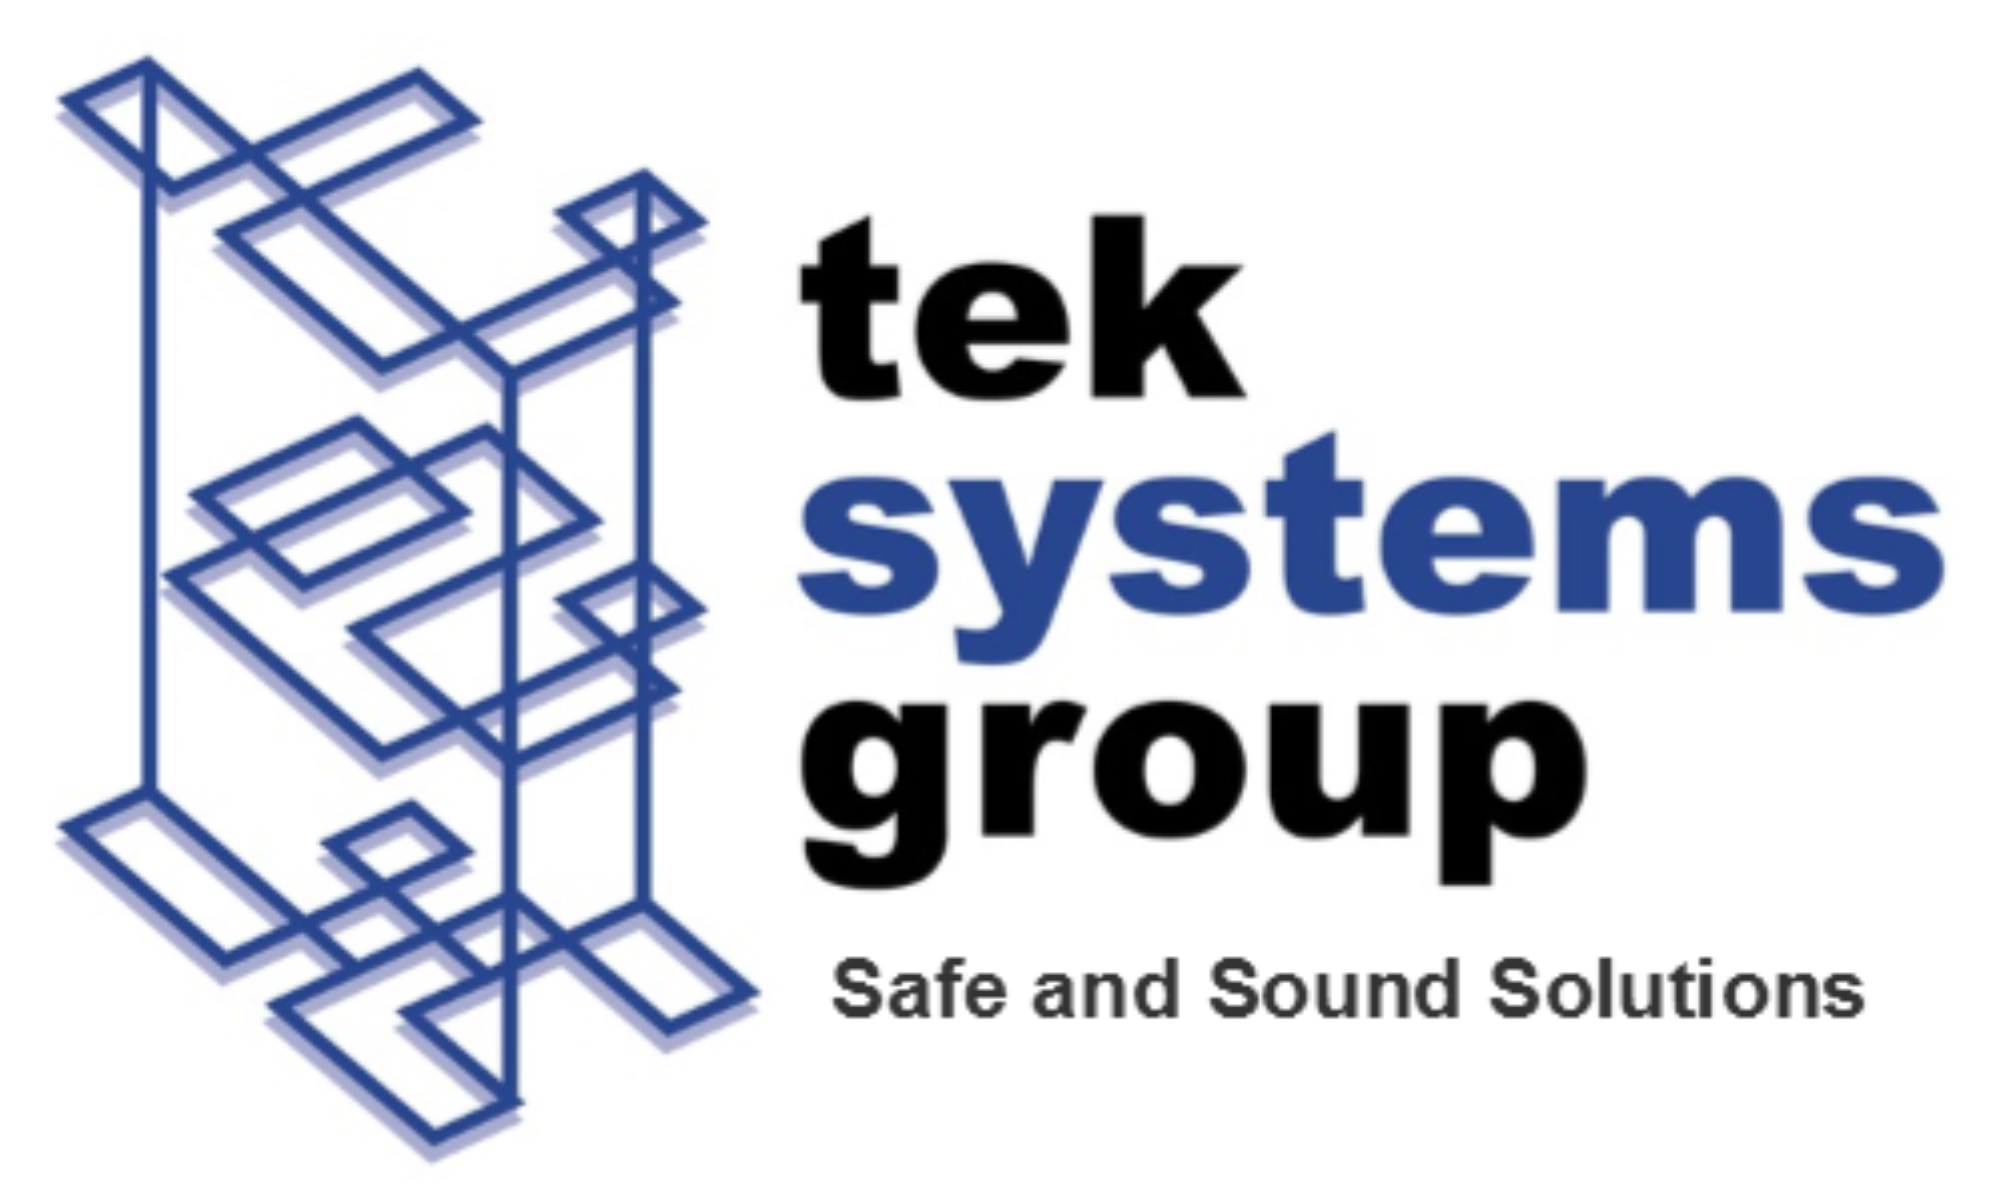 Tek Systems Group Inc. | Security, Integration & Automation